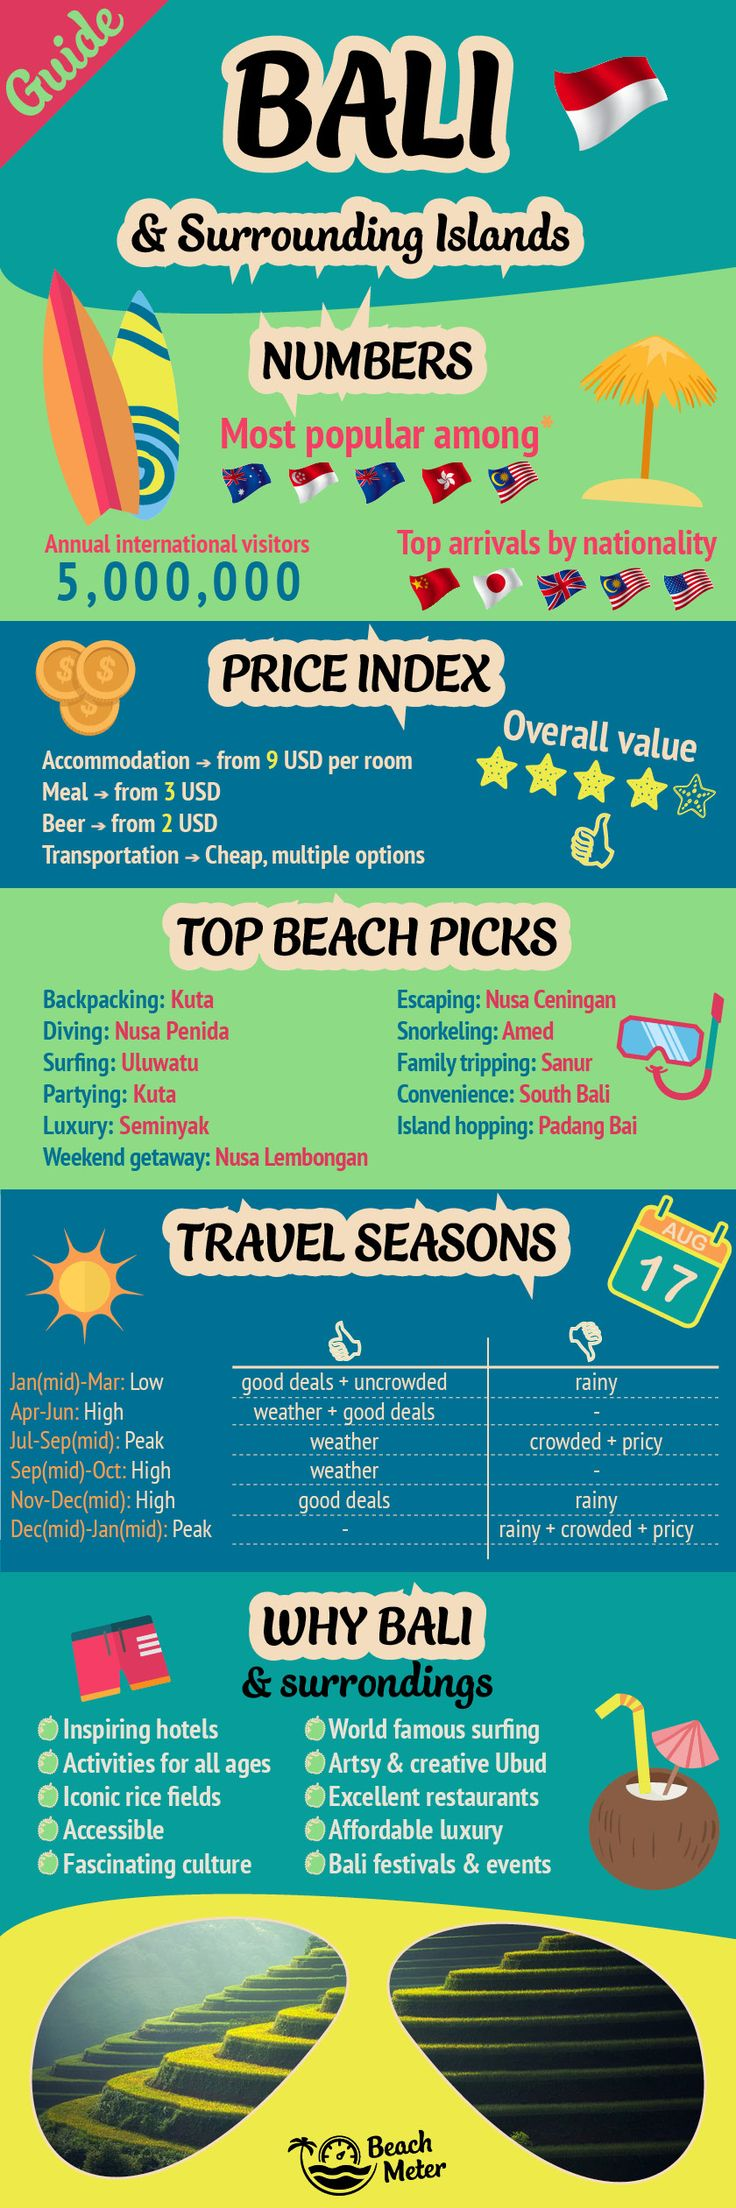 Your travel guide to Bali, Lombok, and Gili Islands. Check out travel seasons, best beaches, price levels, and much more.